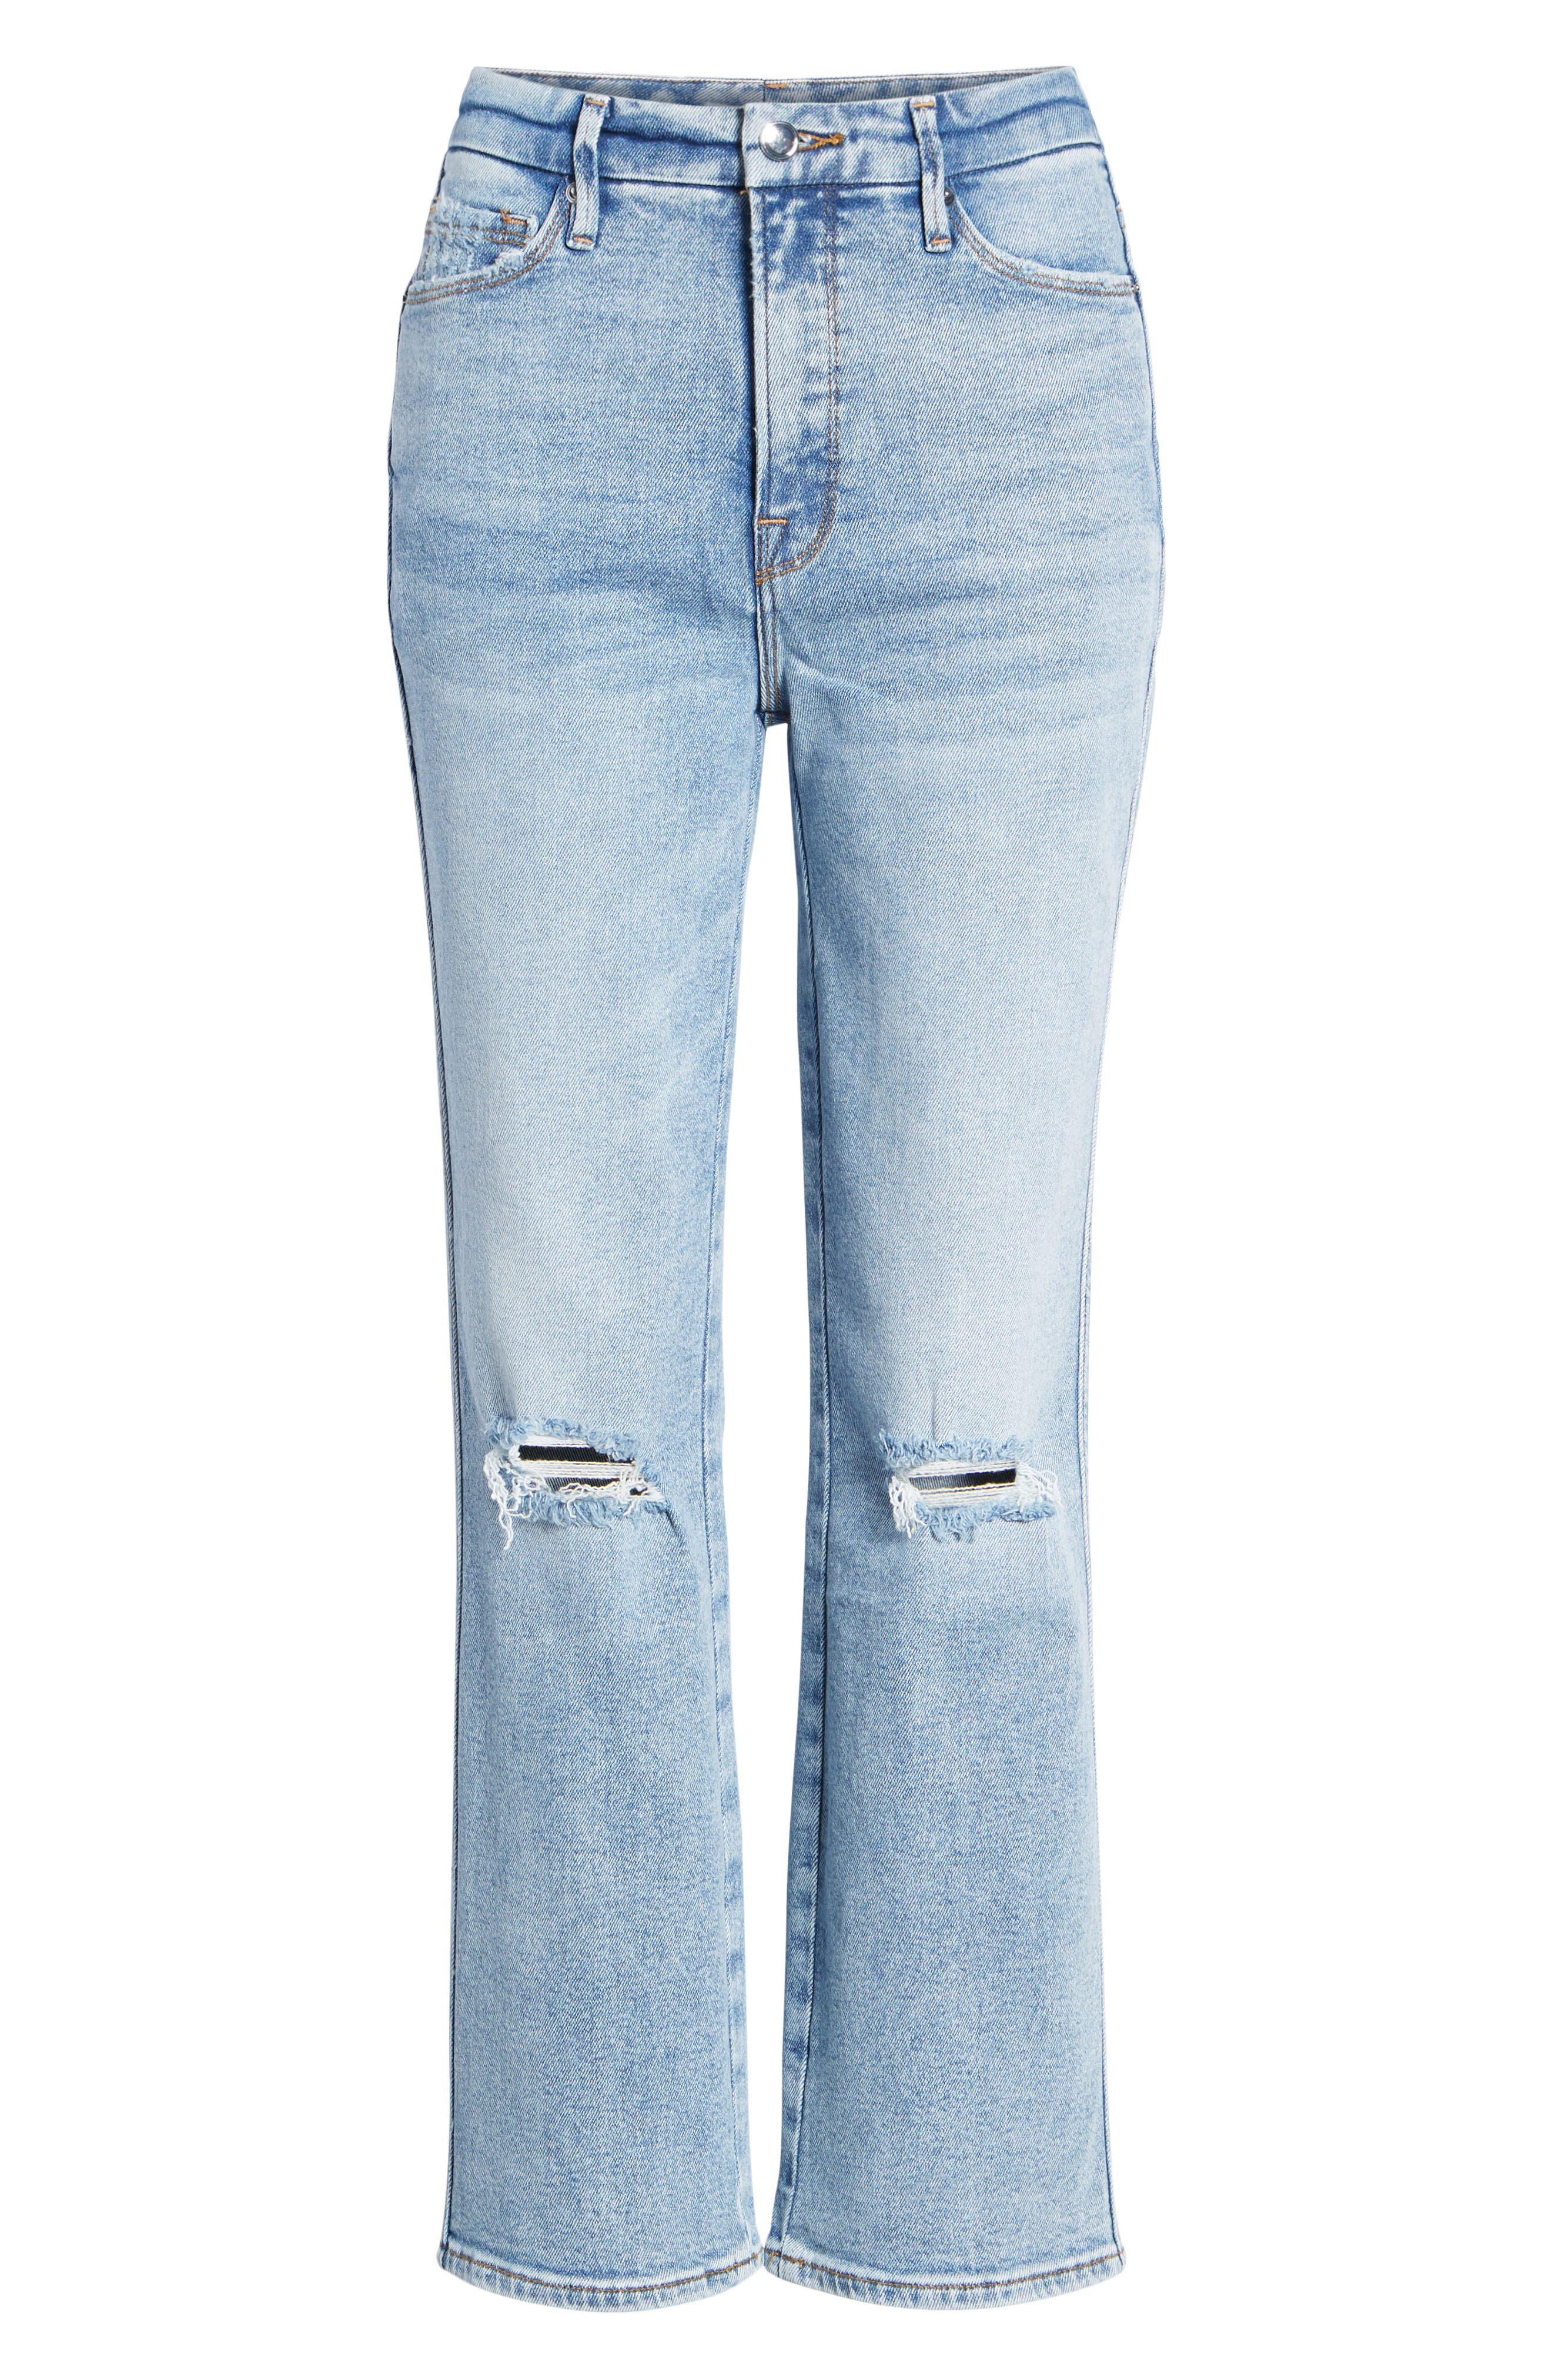 GOOD AMERICAN, Good Curve High Waist Ankle Straight Leg Jeans, Alternate thumbnail 6, color, 401